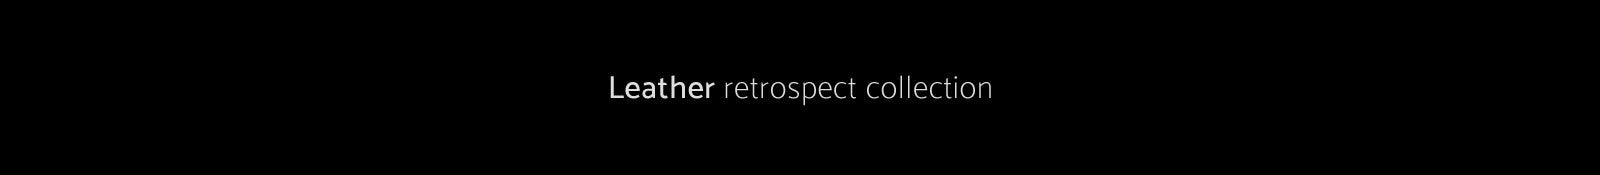 Retrospect leather clothing collection